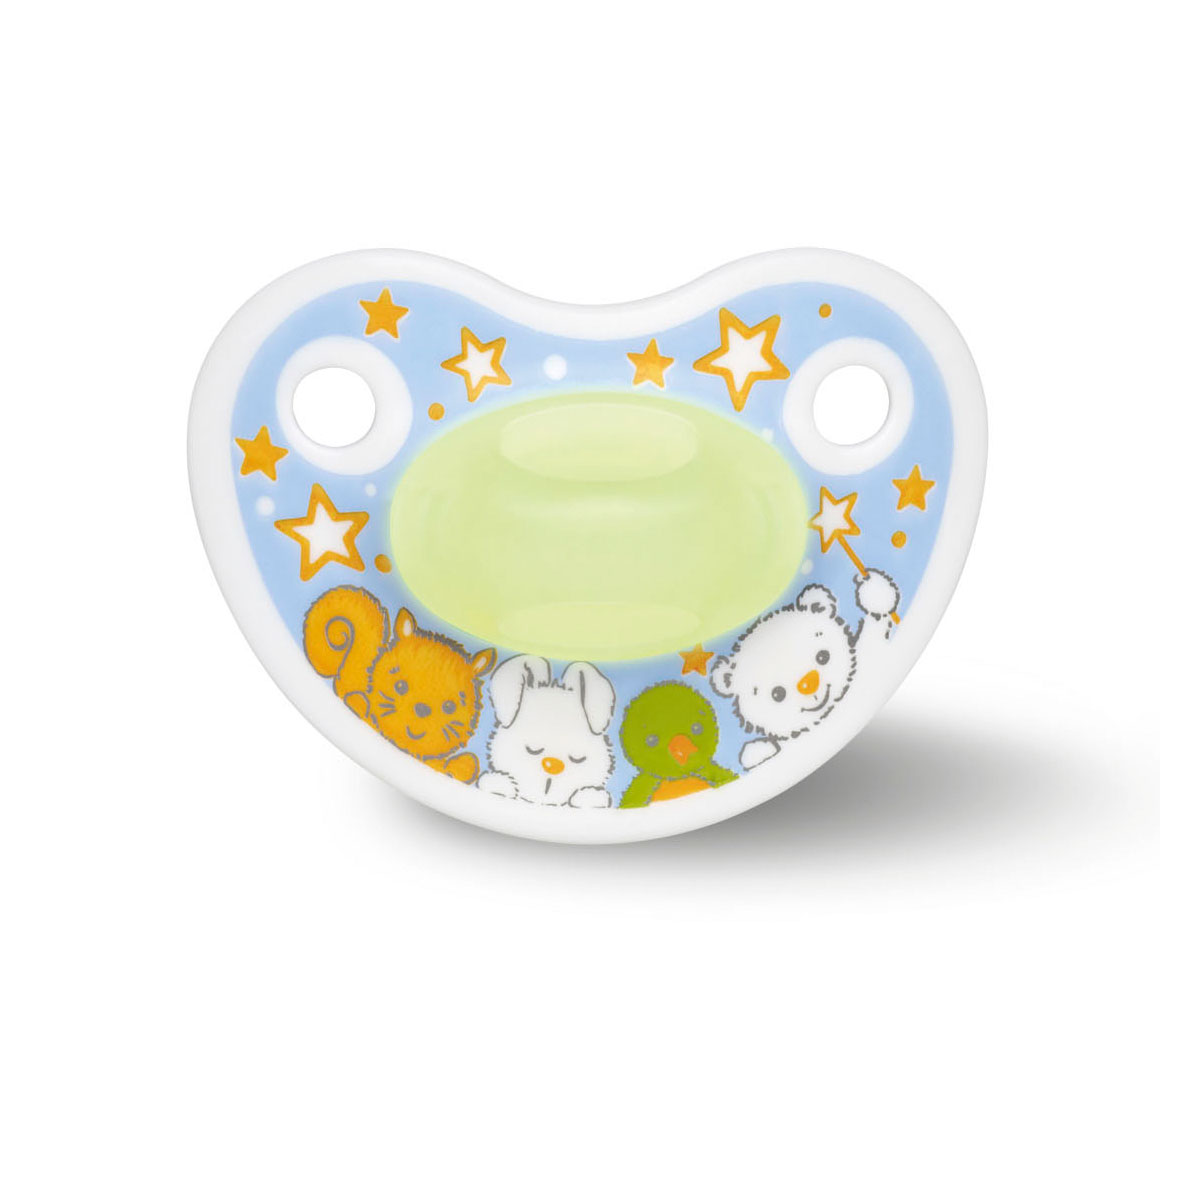 �������� Bibi Premium Dental Happiness Glow in the Dark ���������� (� 0 ���)